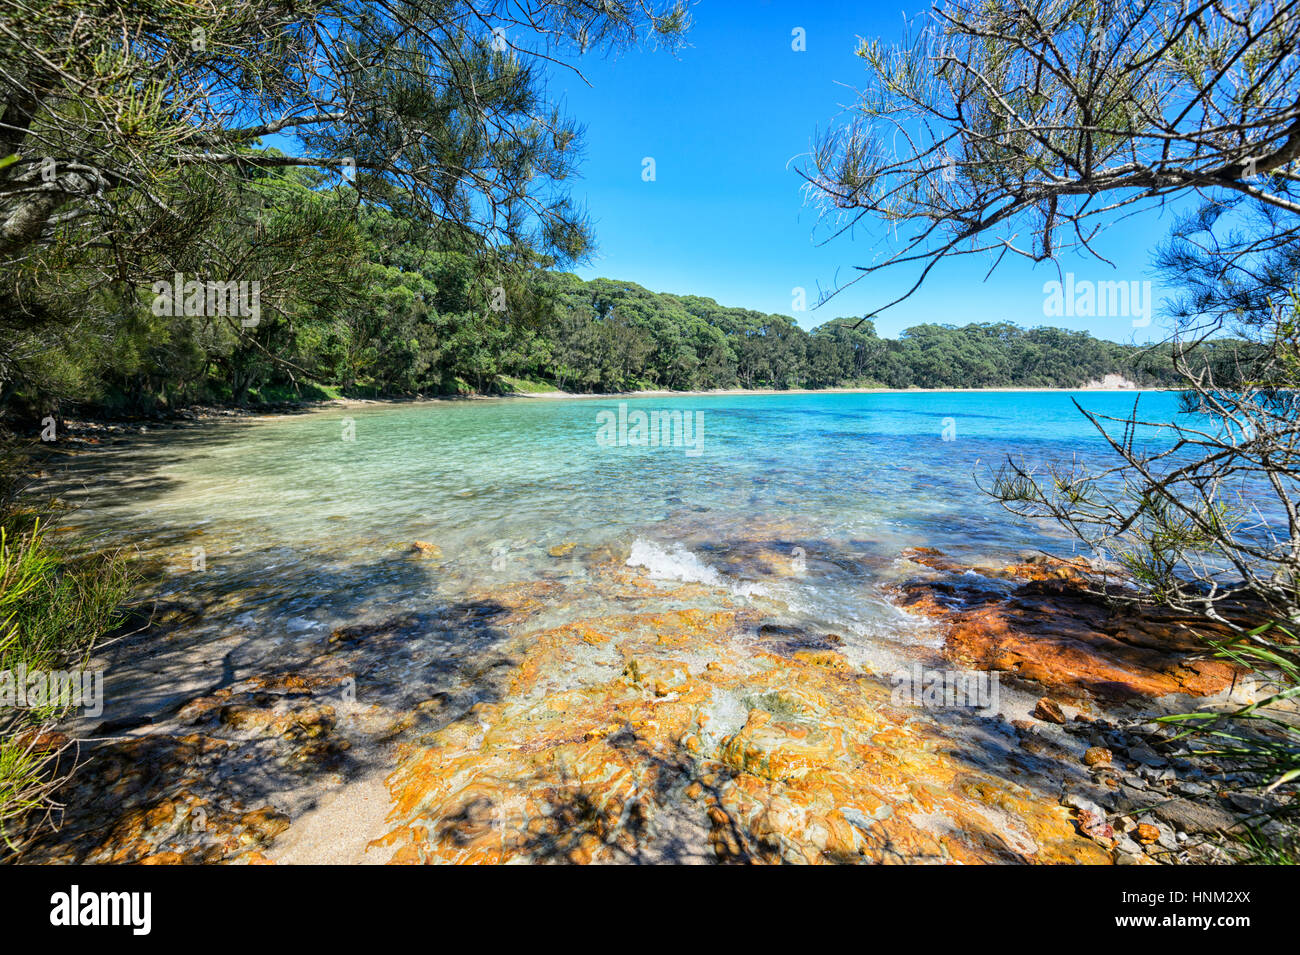 The scenic South Coast at Bendalong, Red Point, Conjola National Park, Shoalhaven, New South Wales, NSW, Australia Stock Photo